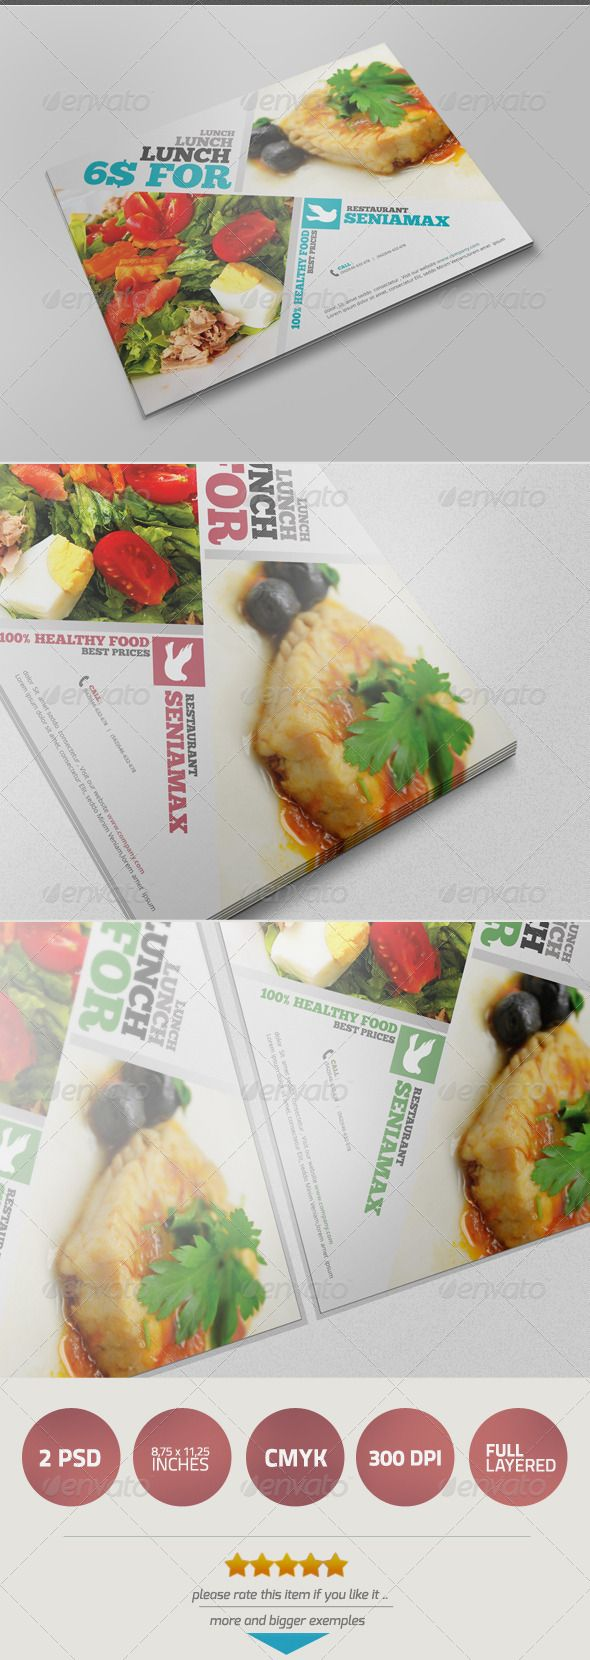 Healthy Food Flyer V  Flyer Template Business Company And